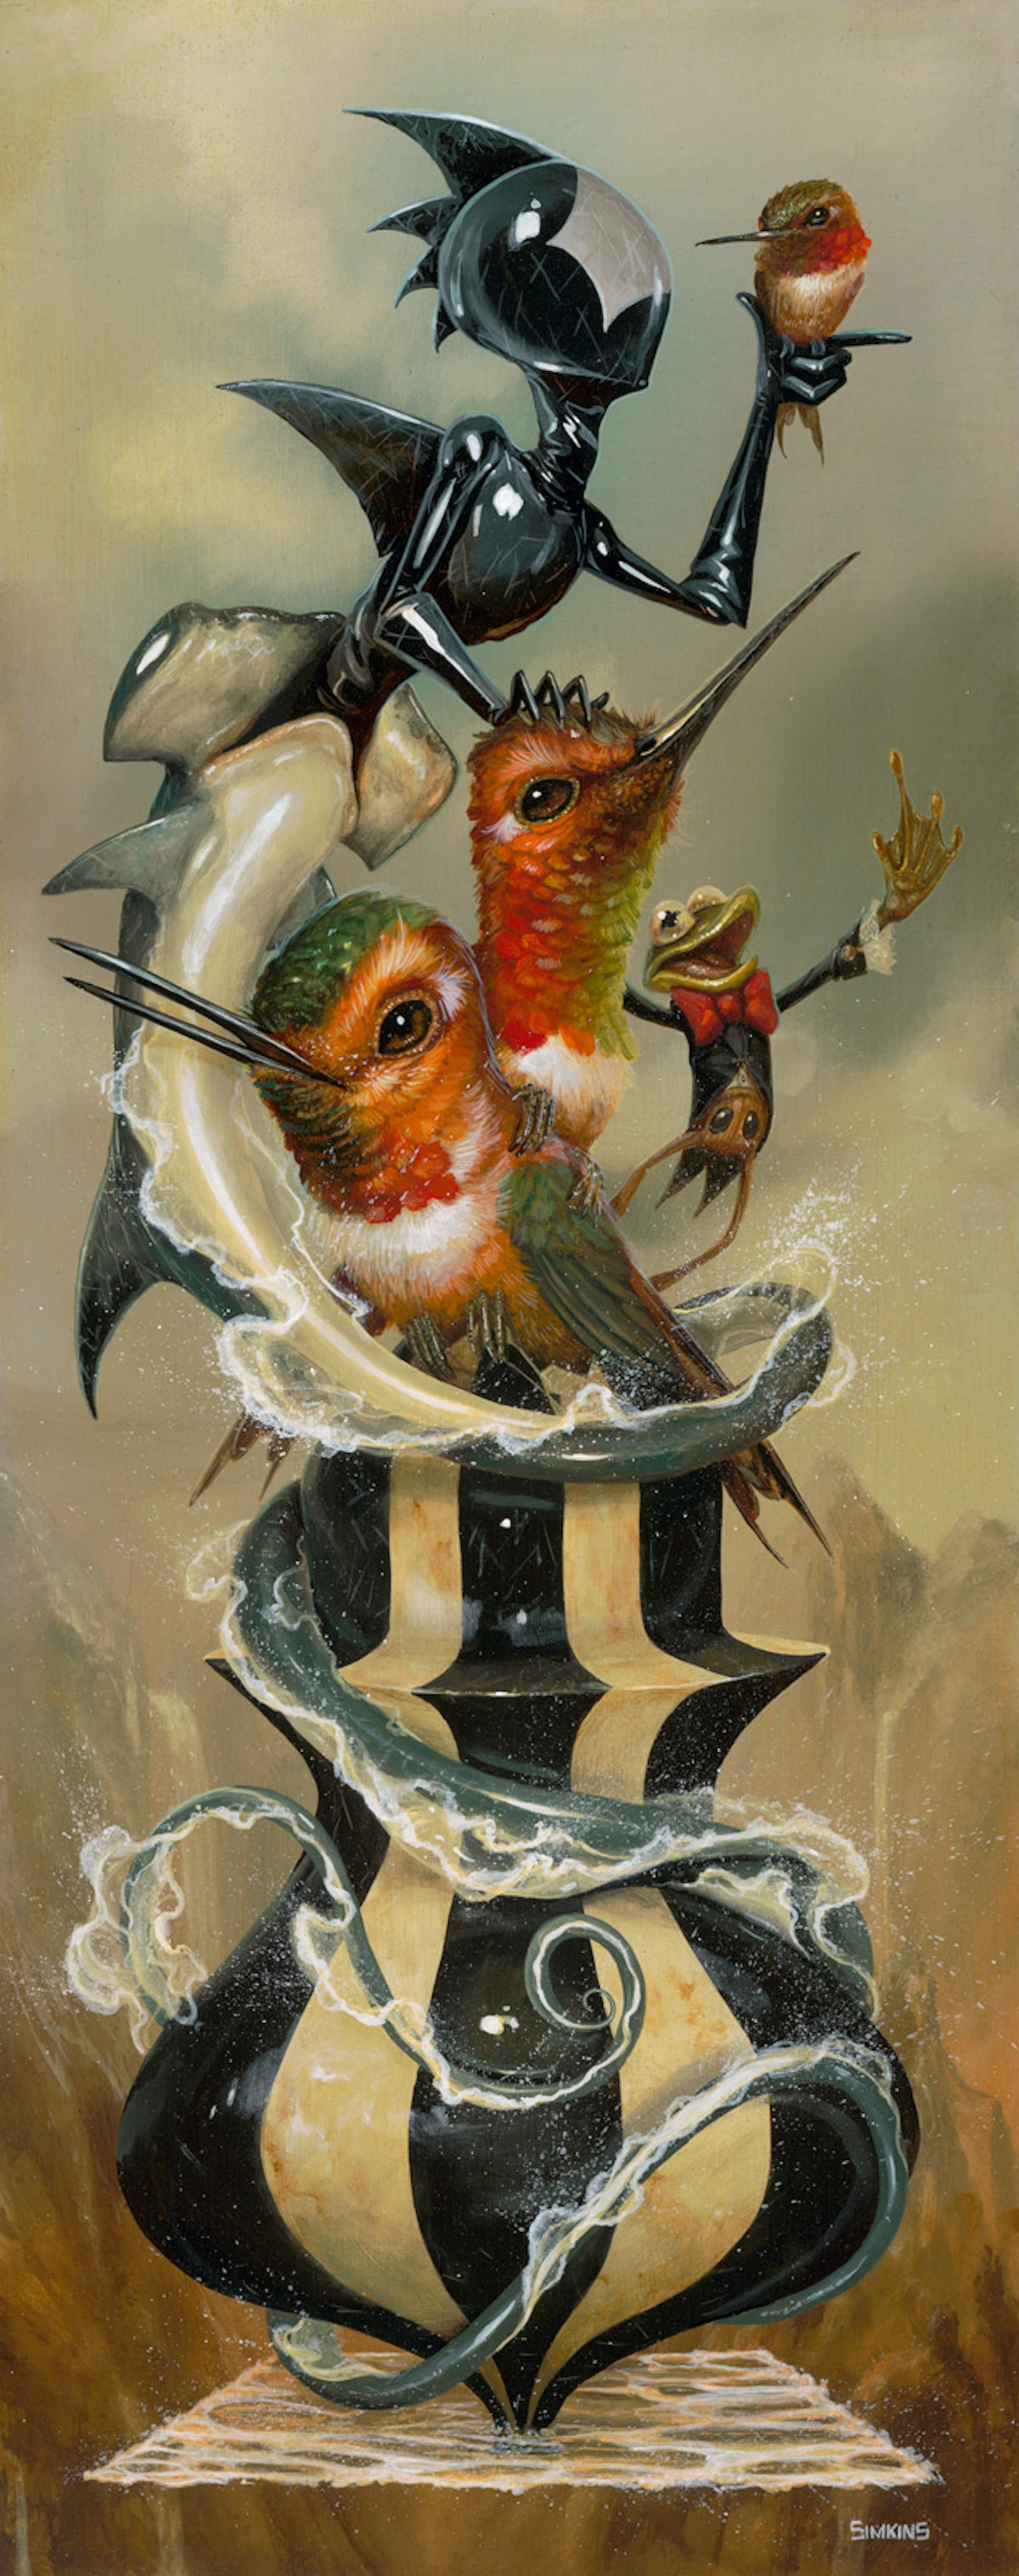 Greg 'Craola' Simkins - The Escape Artist